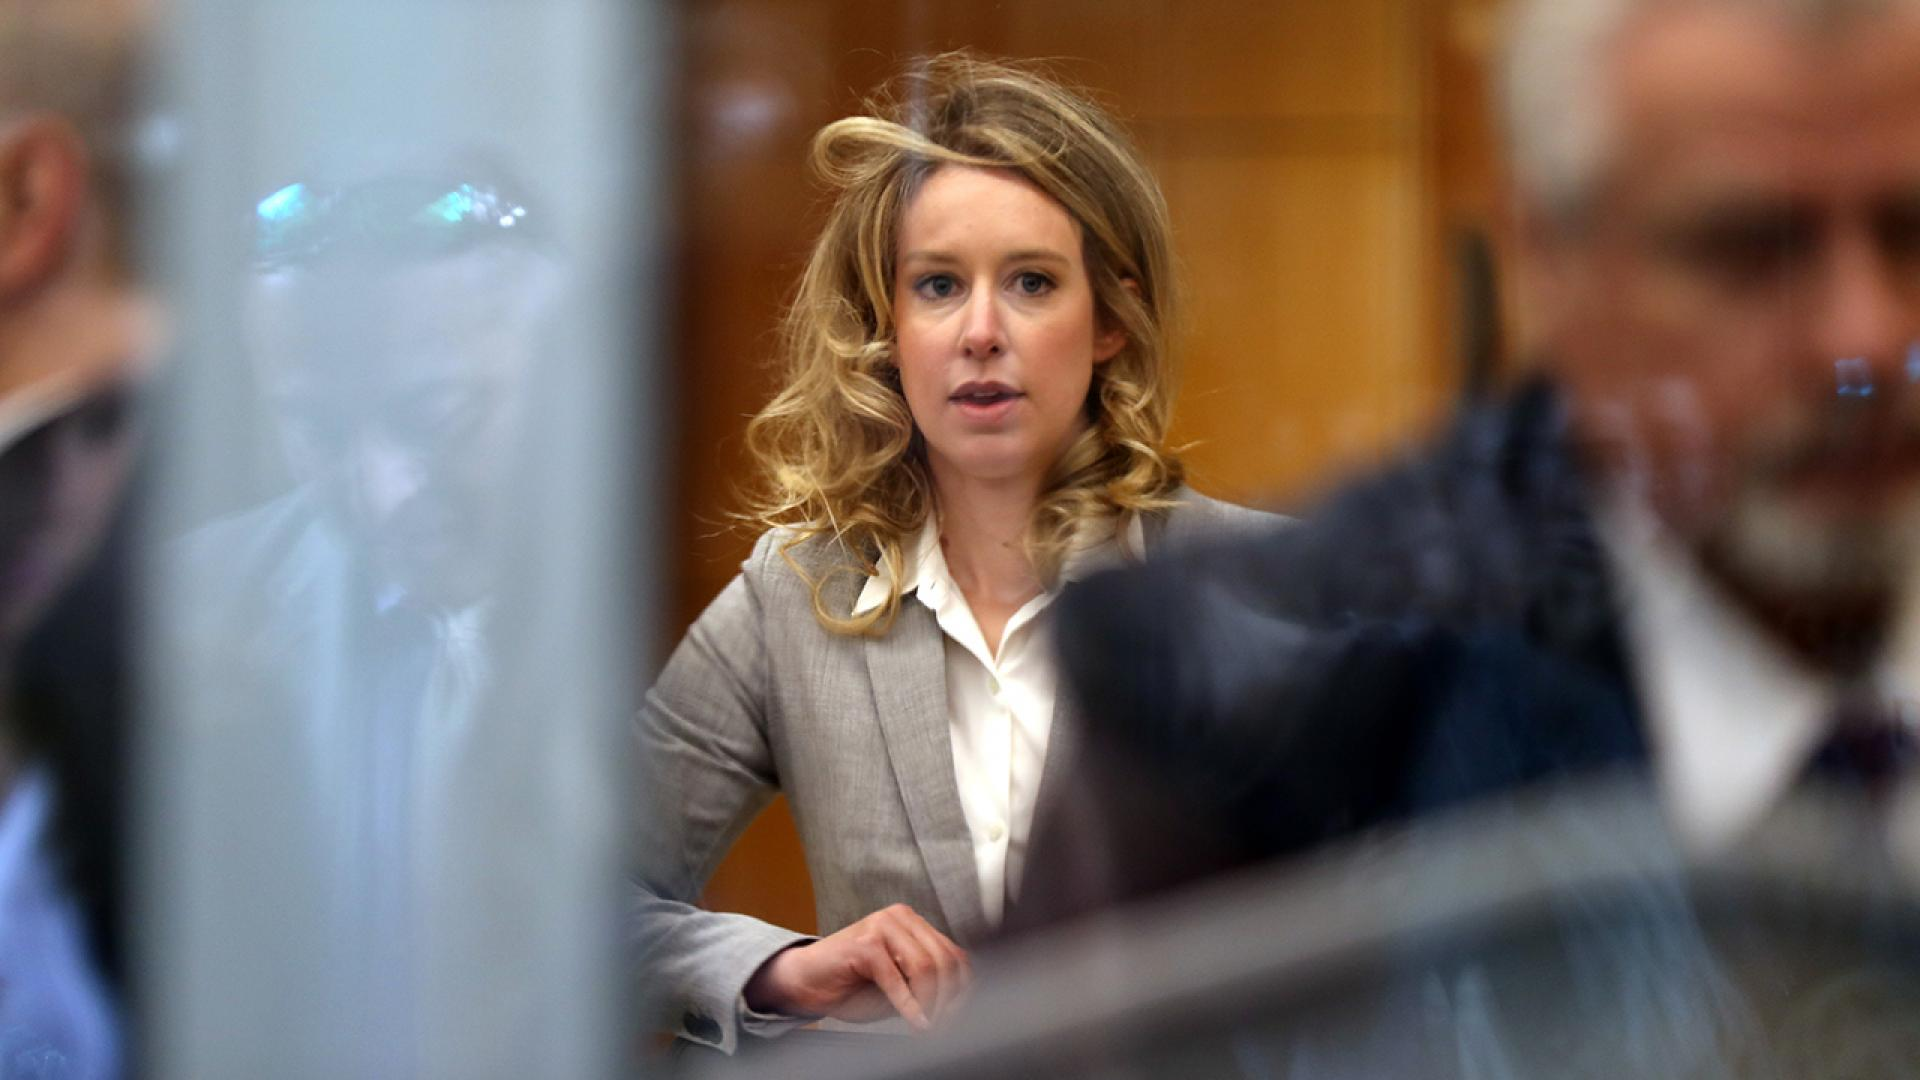 Elizabeth Holmes appears in court with curly hair on June 28, 2019.